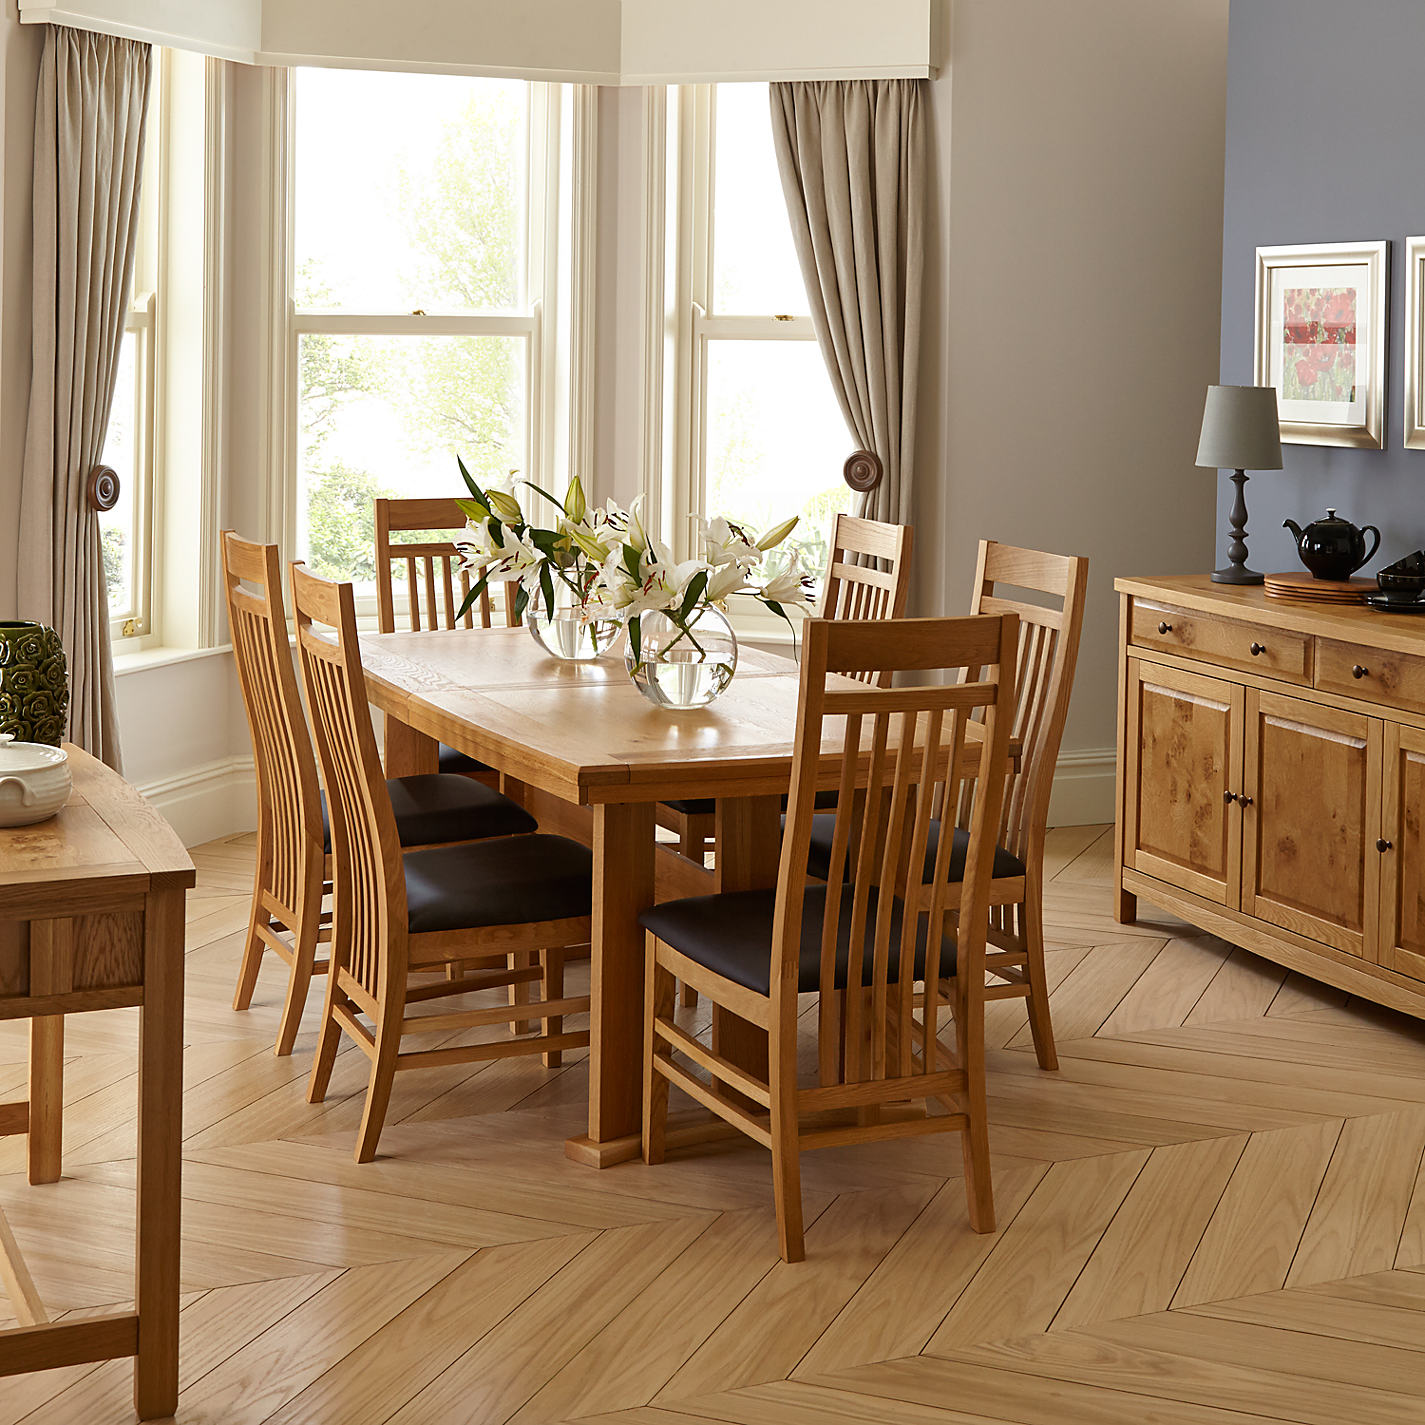 Buy John Lewis Burford Living U0026 Dining Room Furniture Online At Johnlewis.  ... Part 36